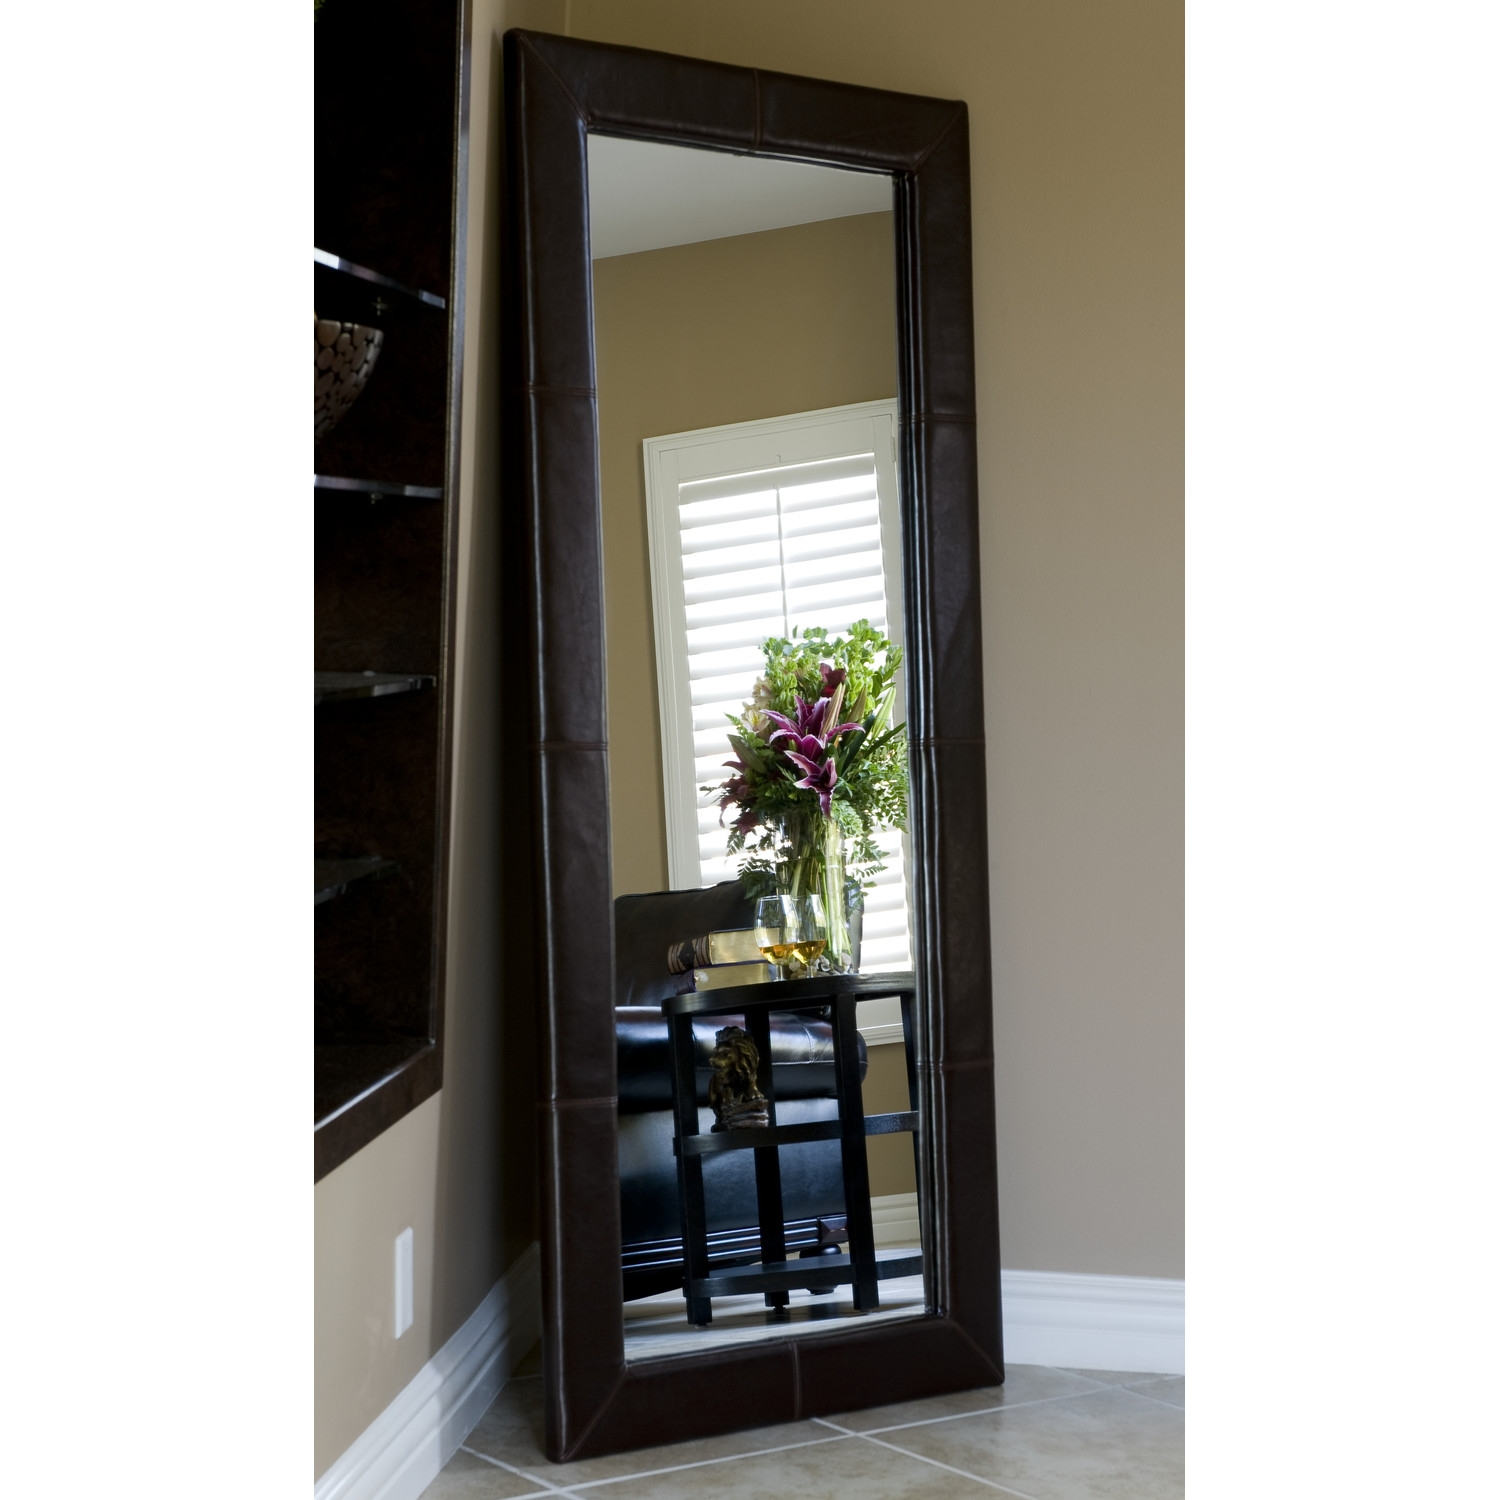 Cheap Full Length Mirrors Harpsoundsco With Regard To Black Leather Framed Mirror (Image 4 of 15)